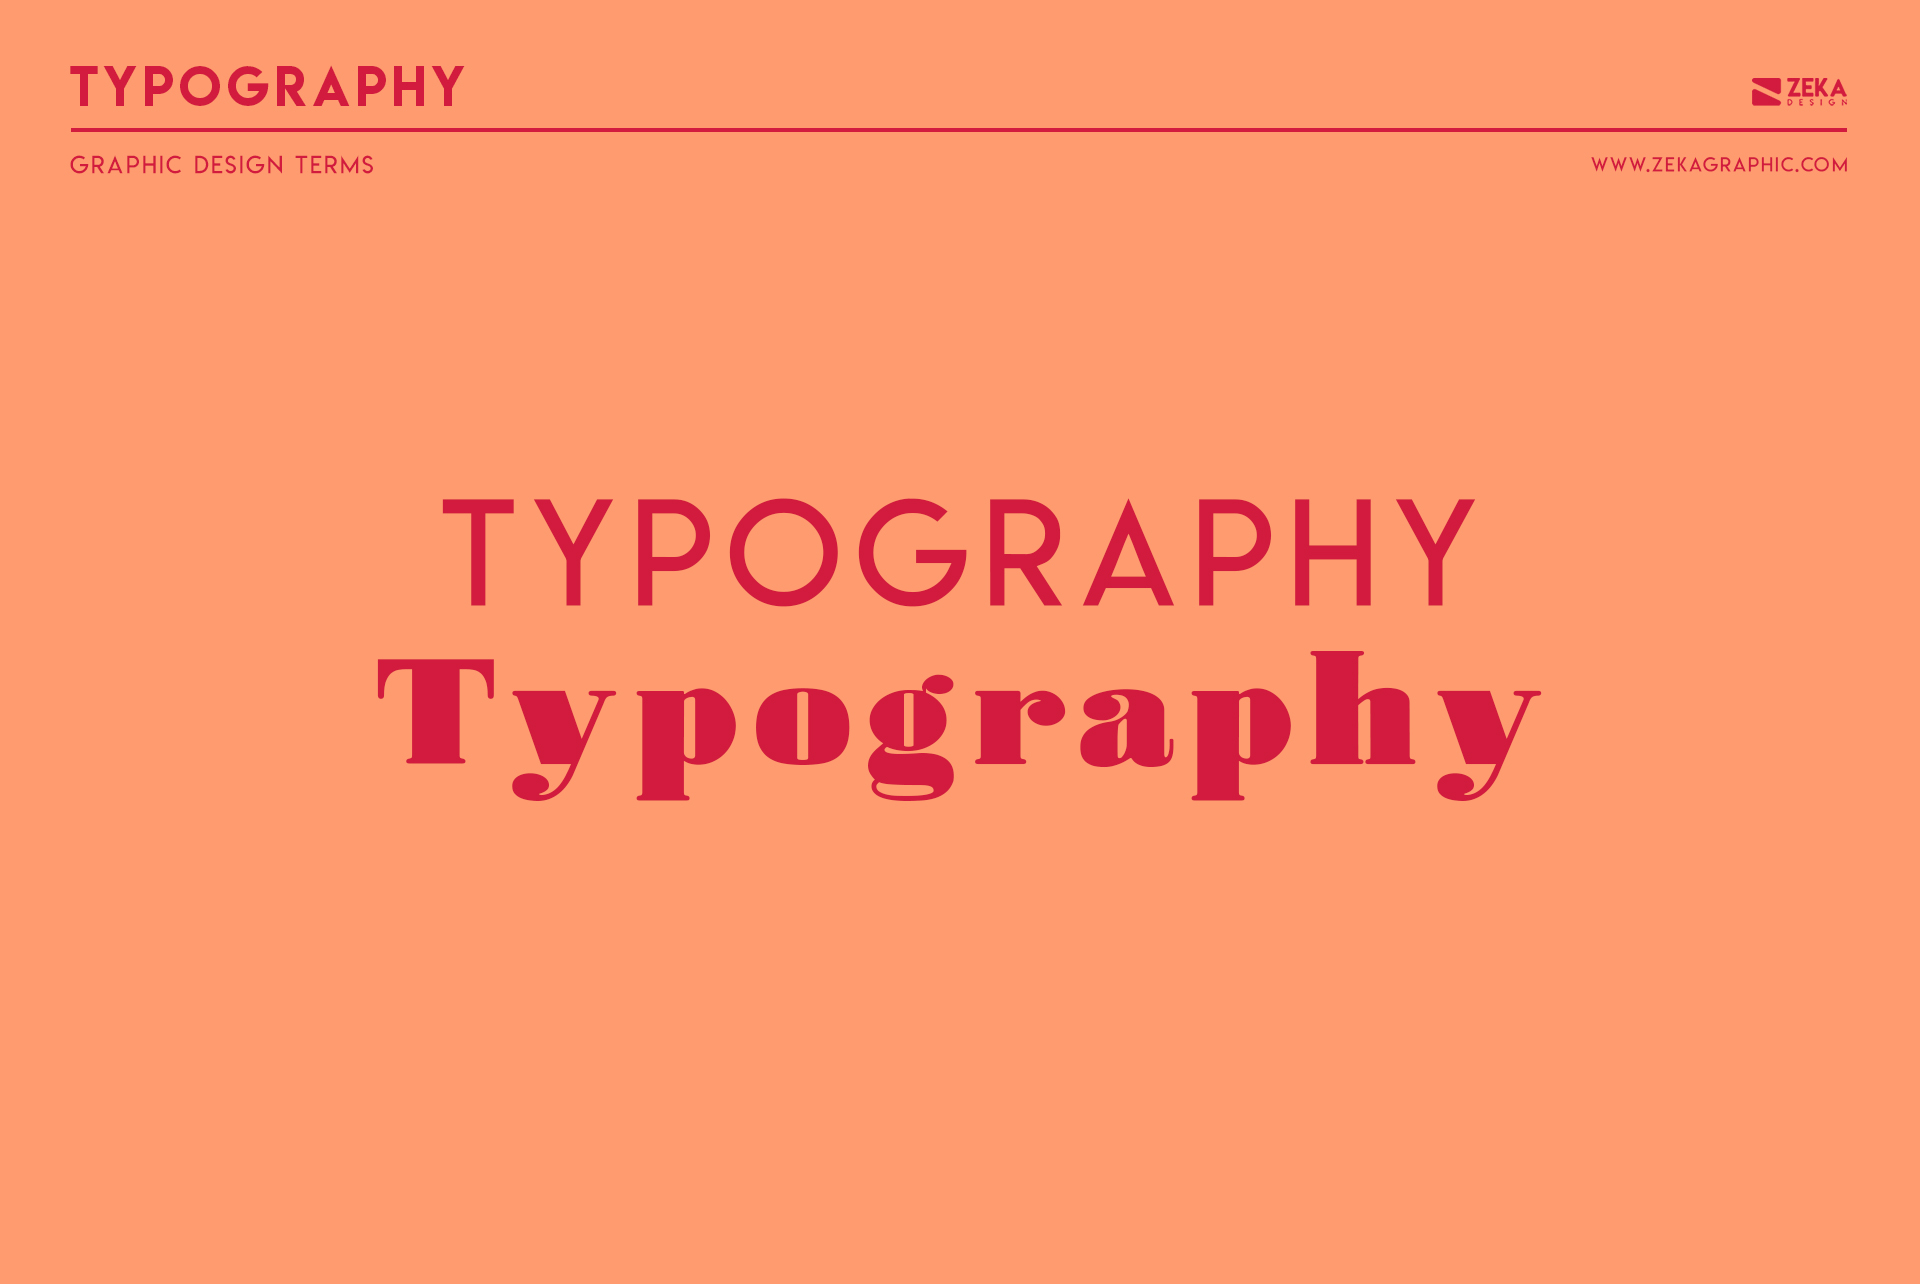 Typography Graphic Design Terms